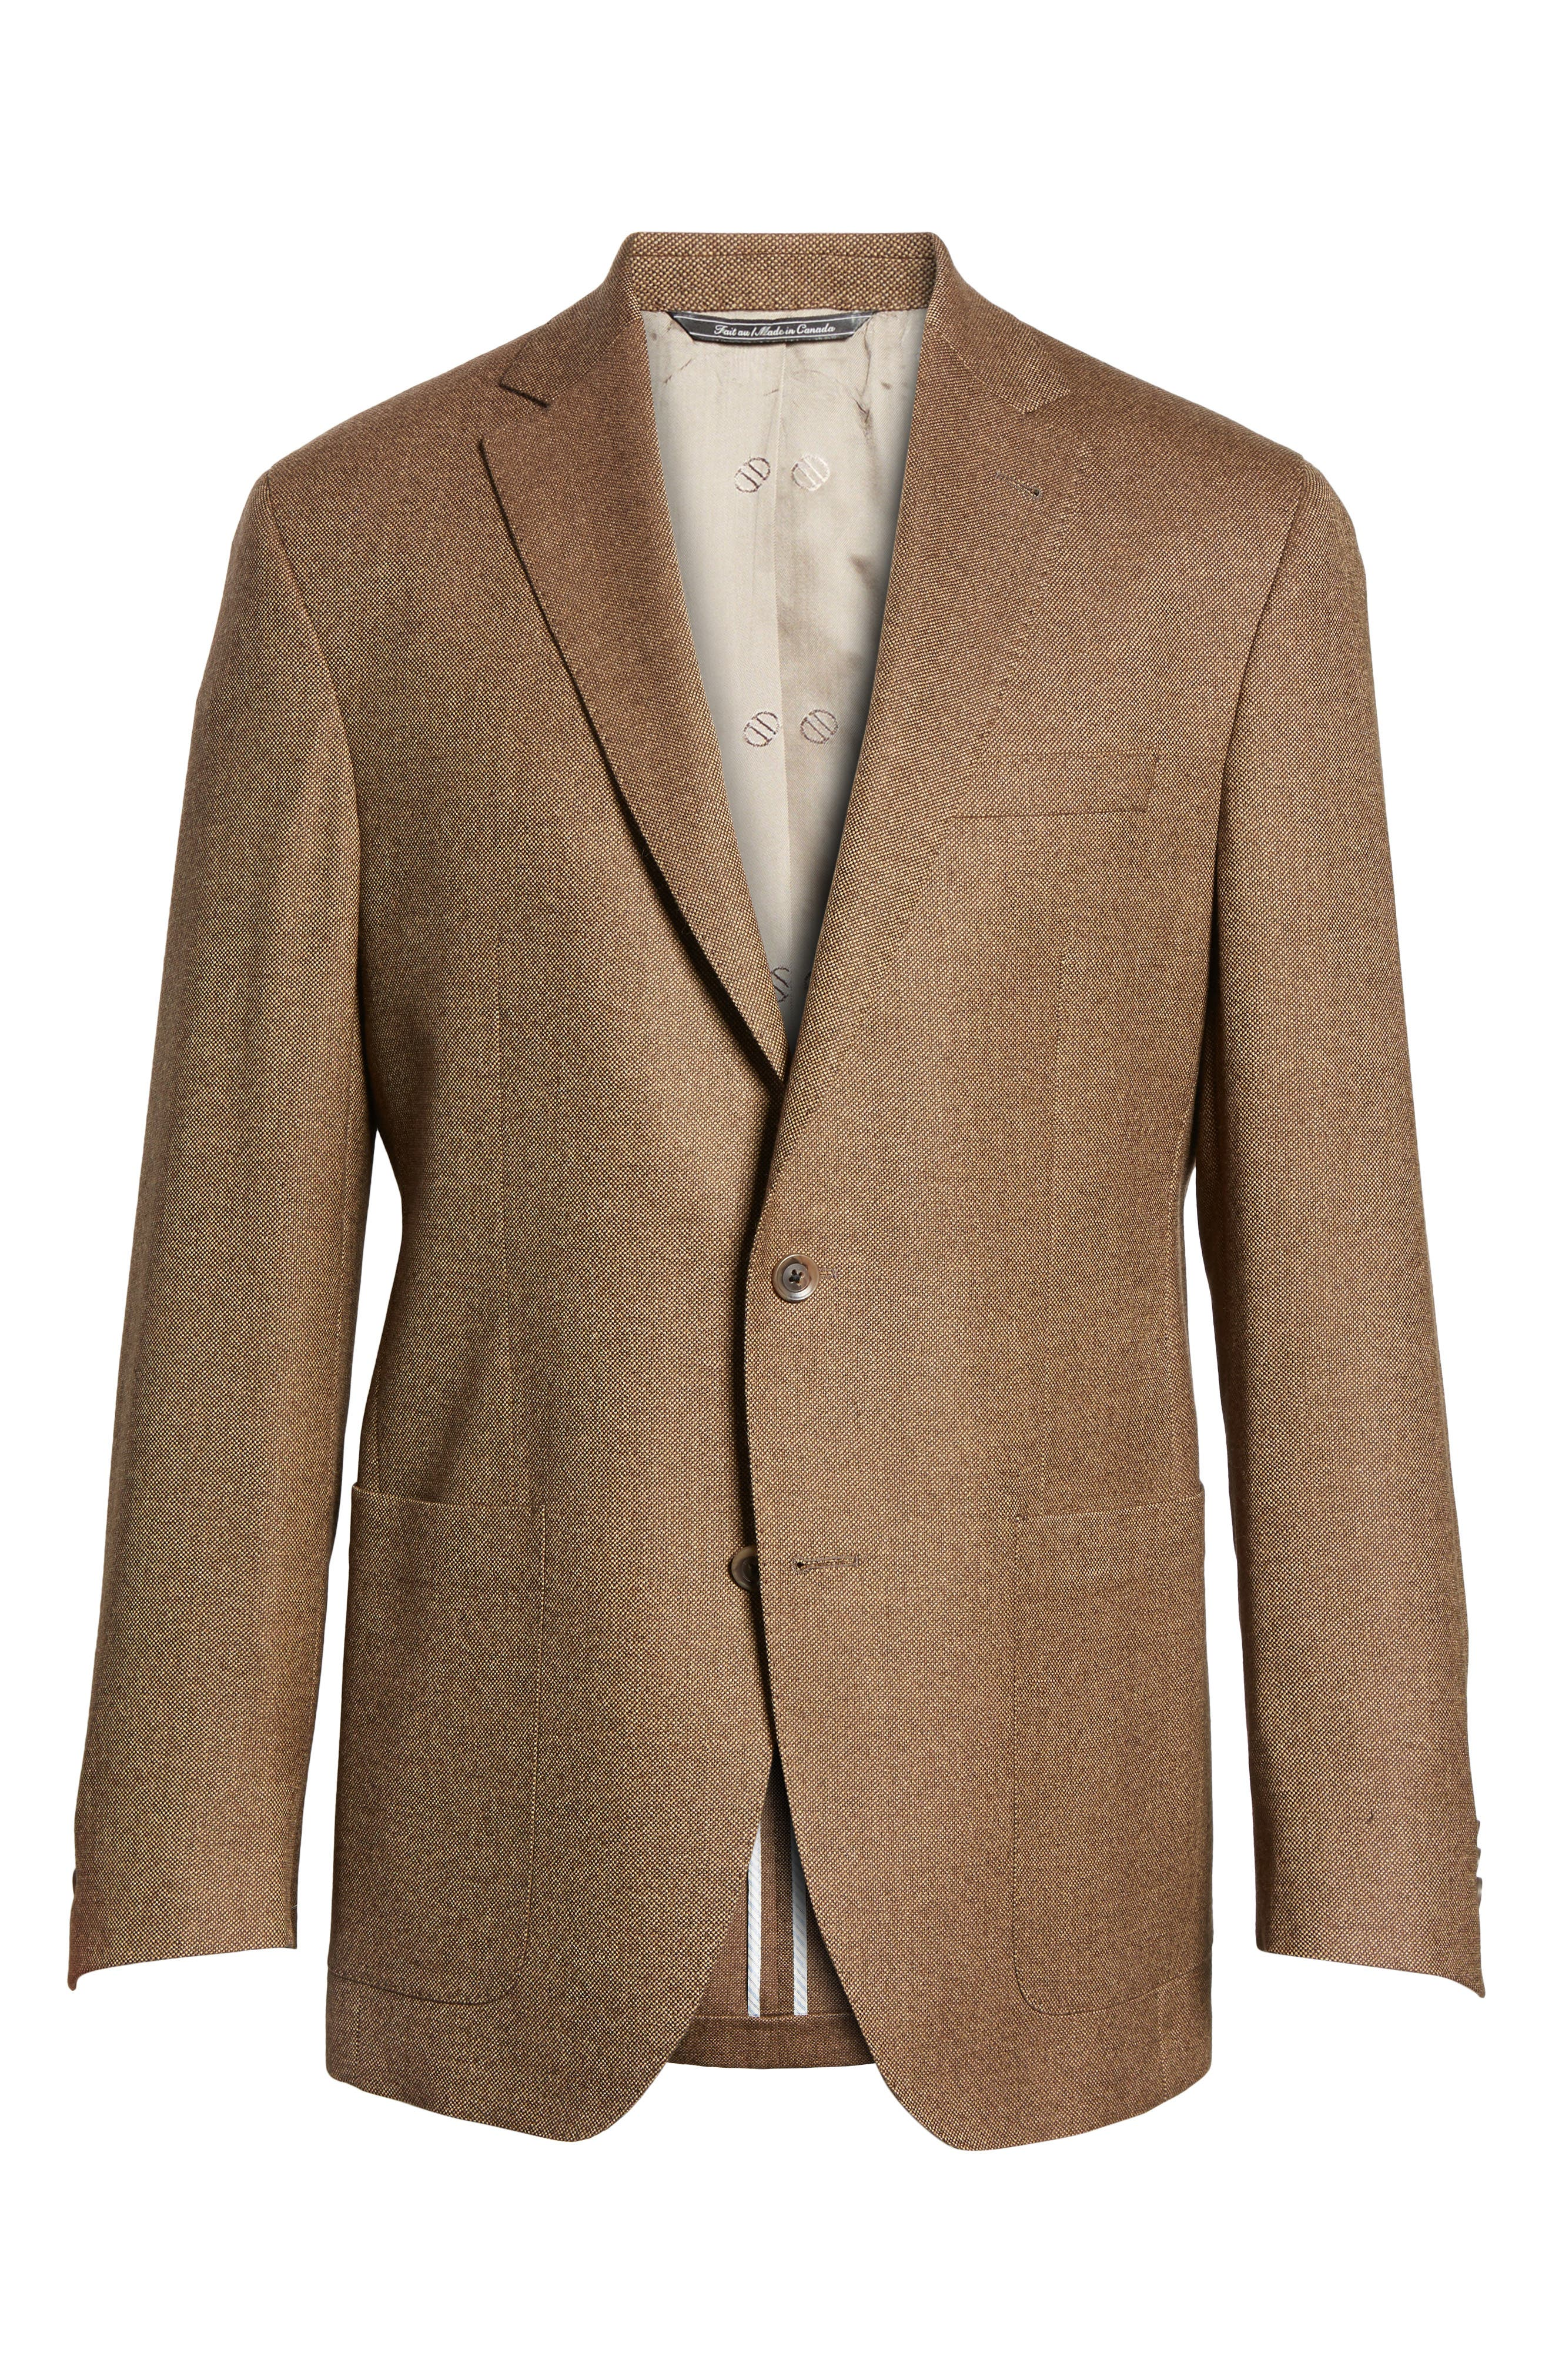 Aiden Classic Fit Wool Blazer,                             Alternate thumbnail 6, color,                             Light Brown